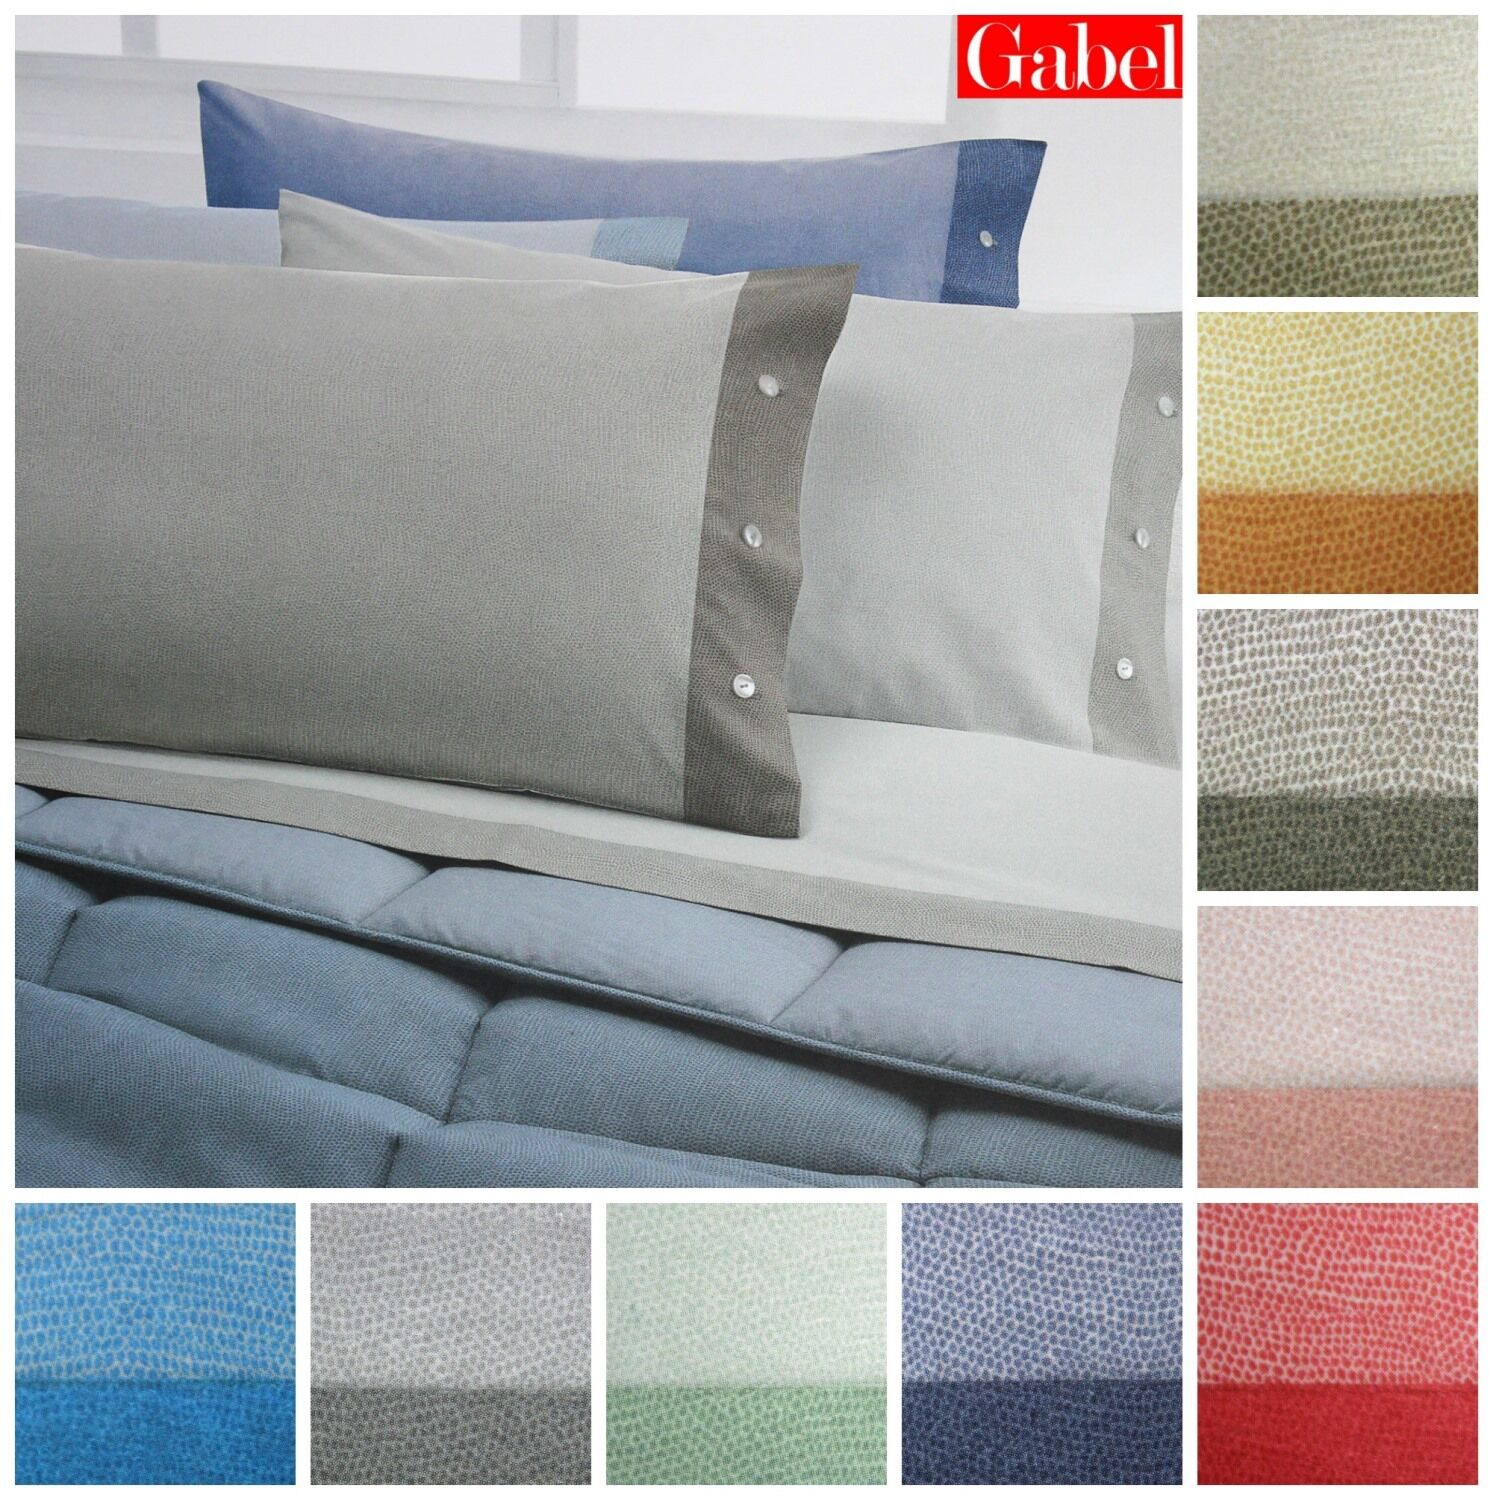 Gabel 2 Squares Double Full Bed Flannel Sheets Sirocco 12393